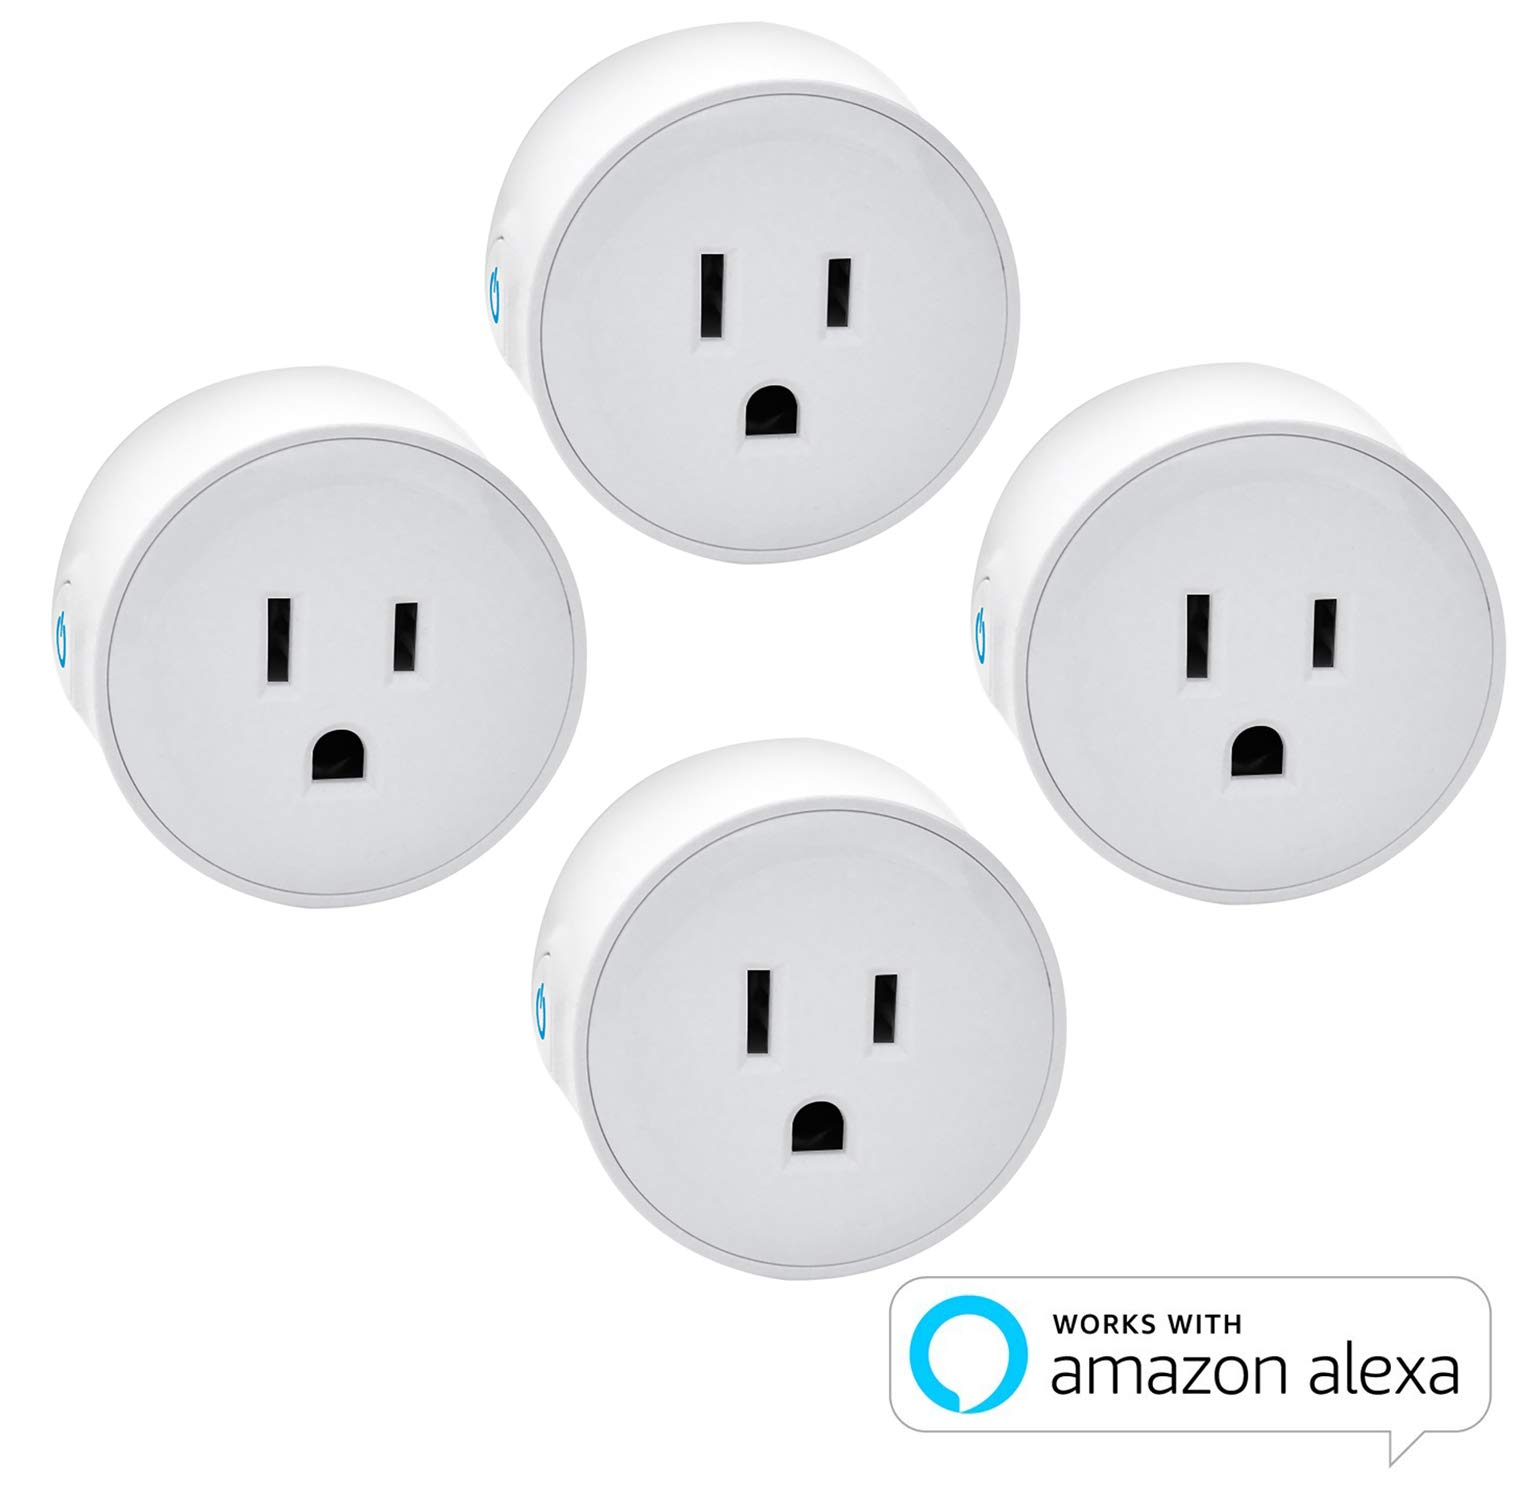 Digital Gadgets Compact Wi-Fi Enabled Smart Plug Control From Smartphone Anywhere Compatible with Alexa 4pack